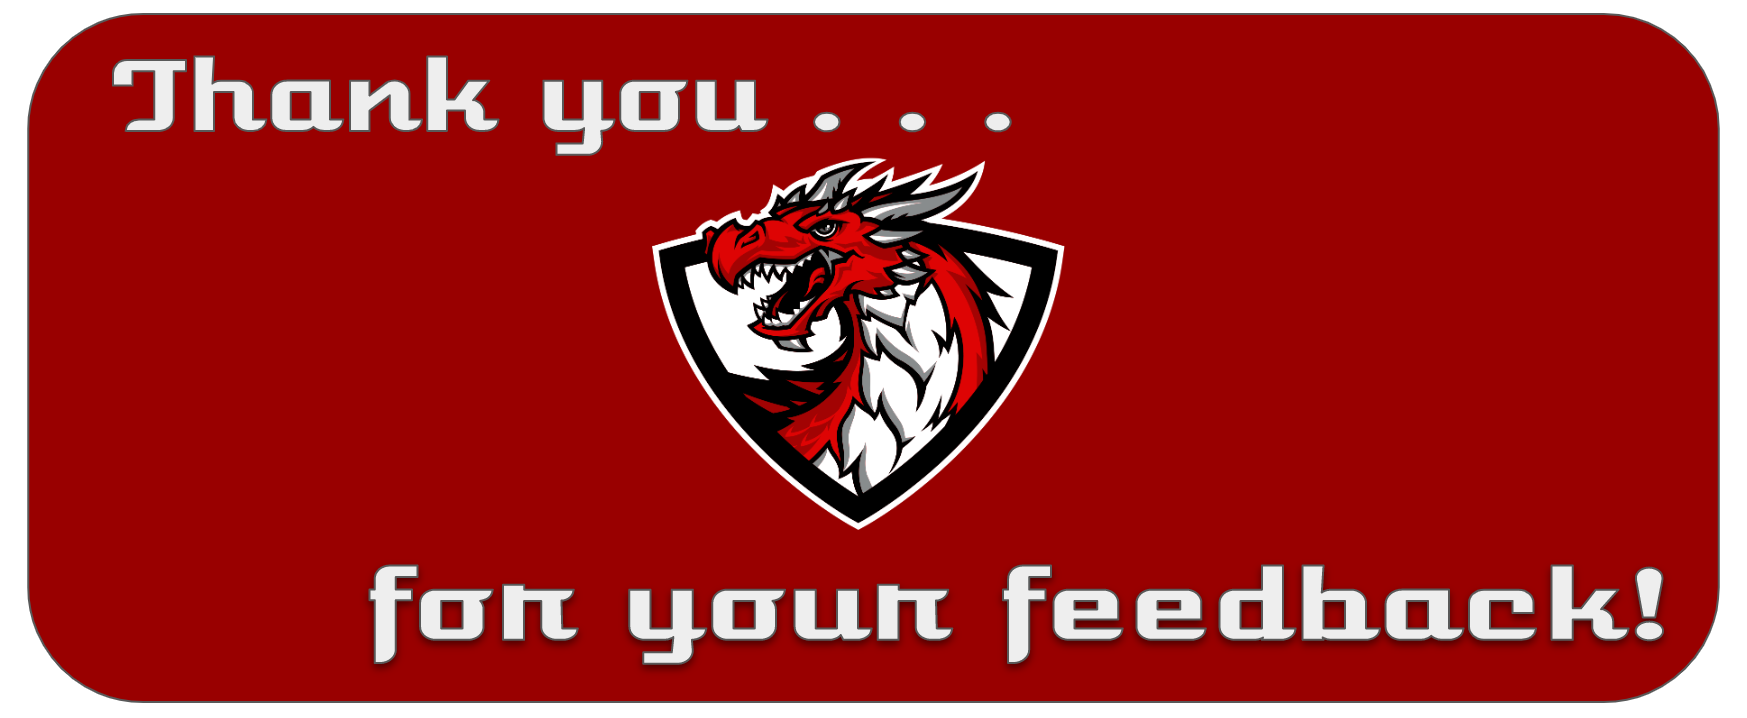 Thank you for the feedback message upon the school logo.